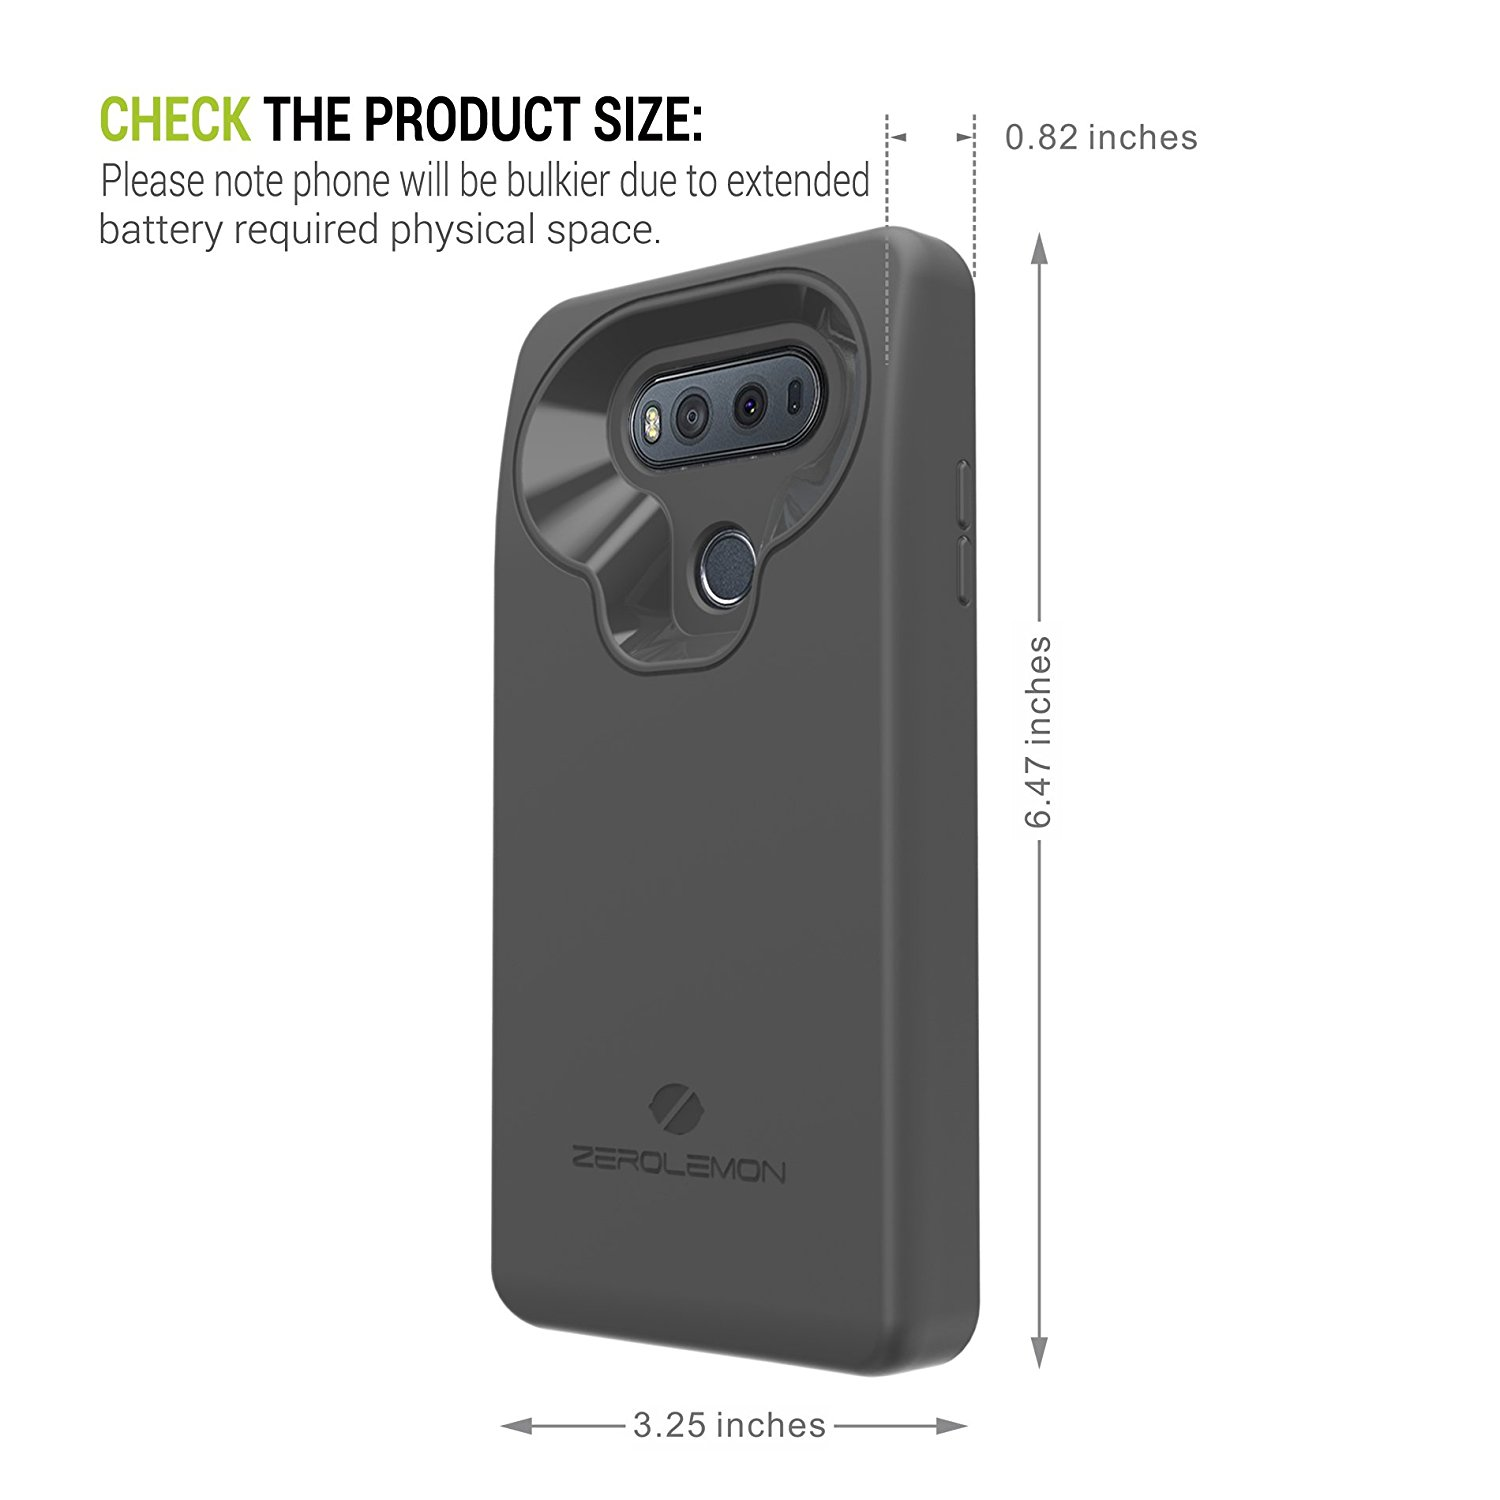 competitive price 9ac71 ed856 ZeroLemon's massive 10,000 mAh battery case for LG V20 is now ...